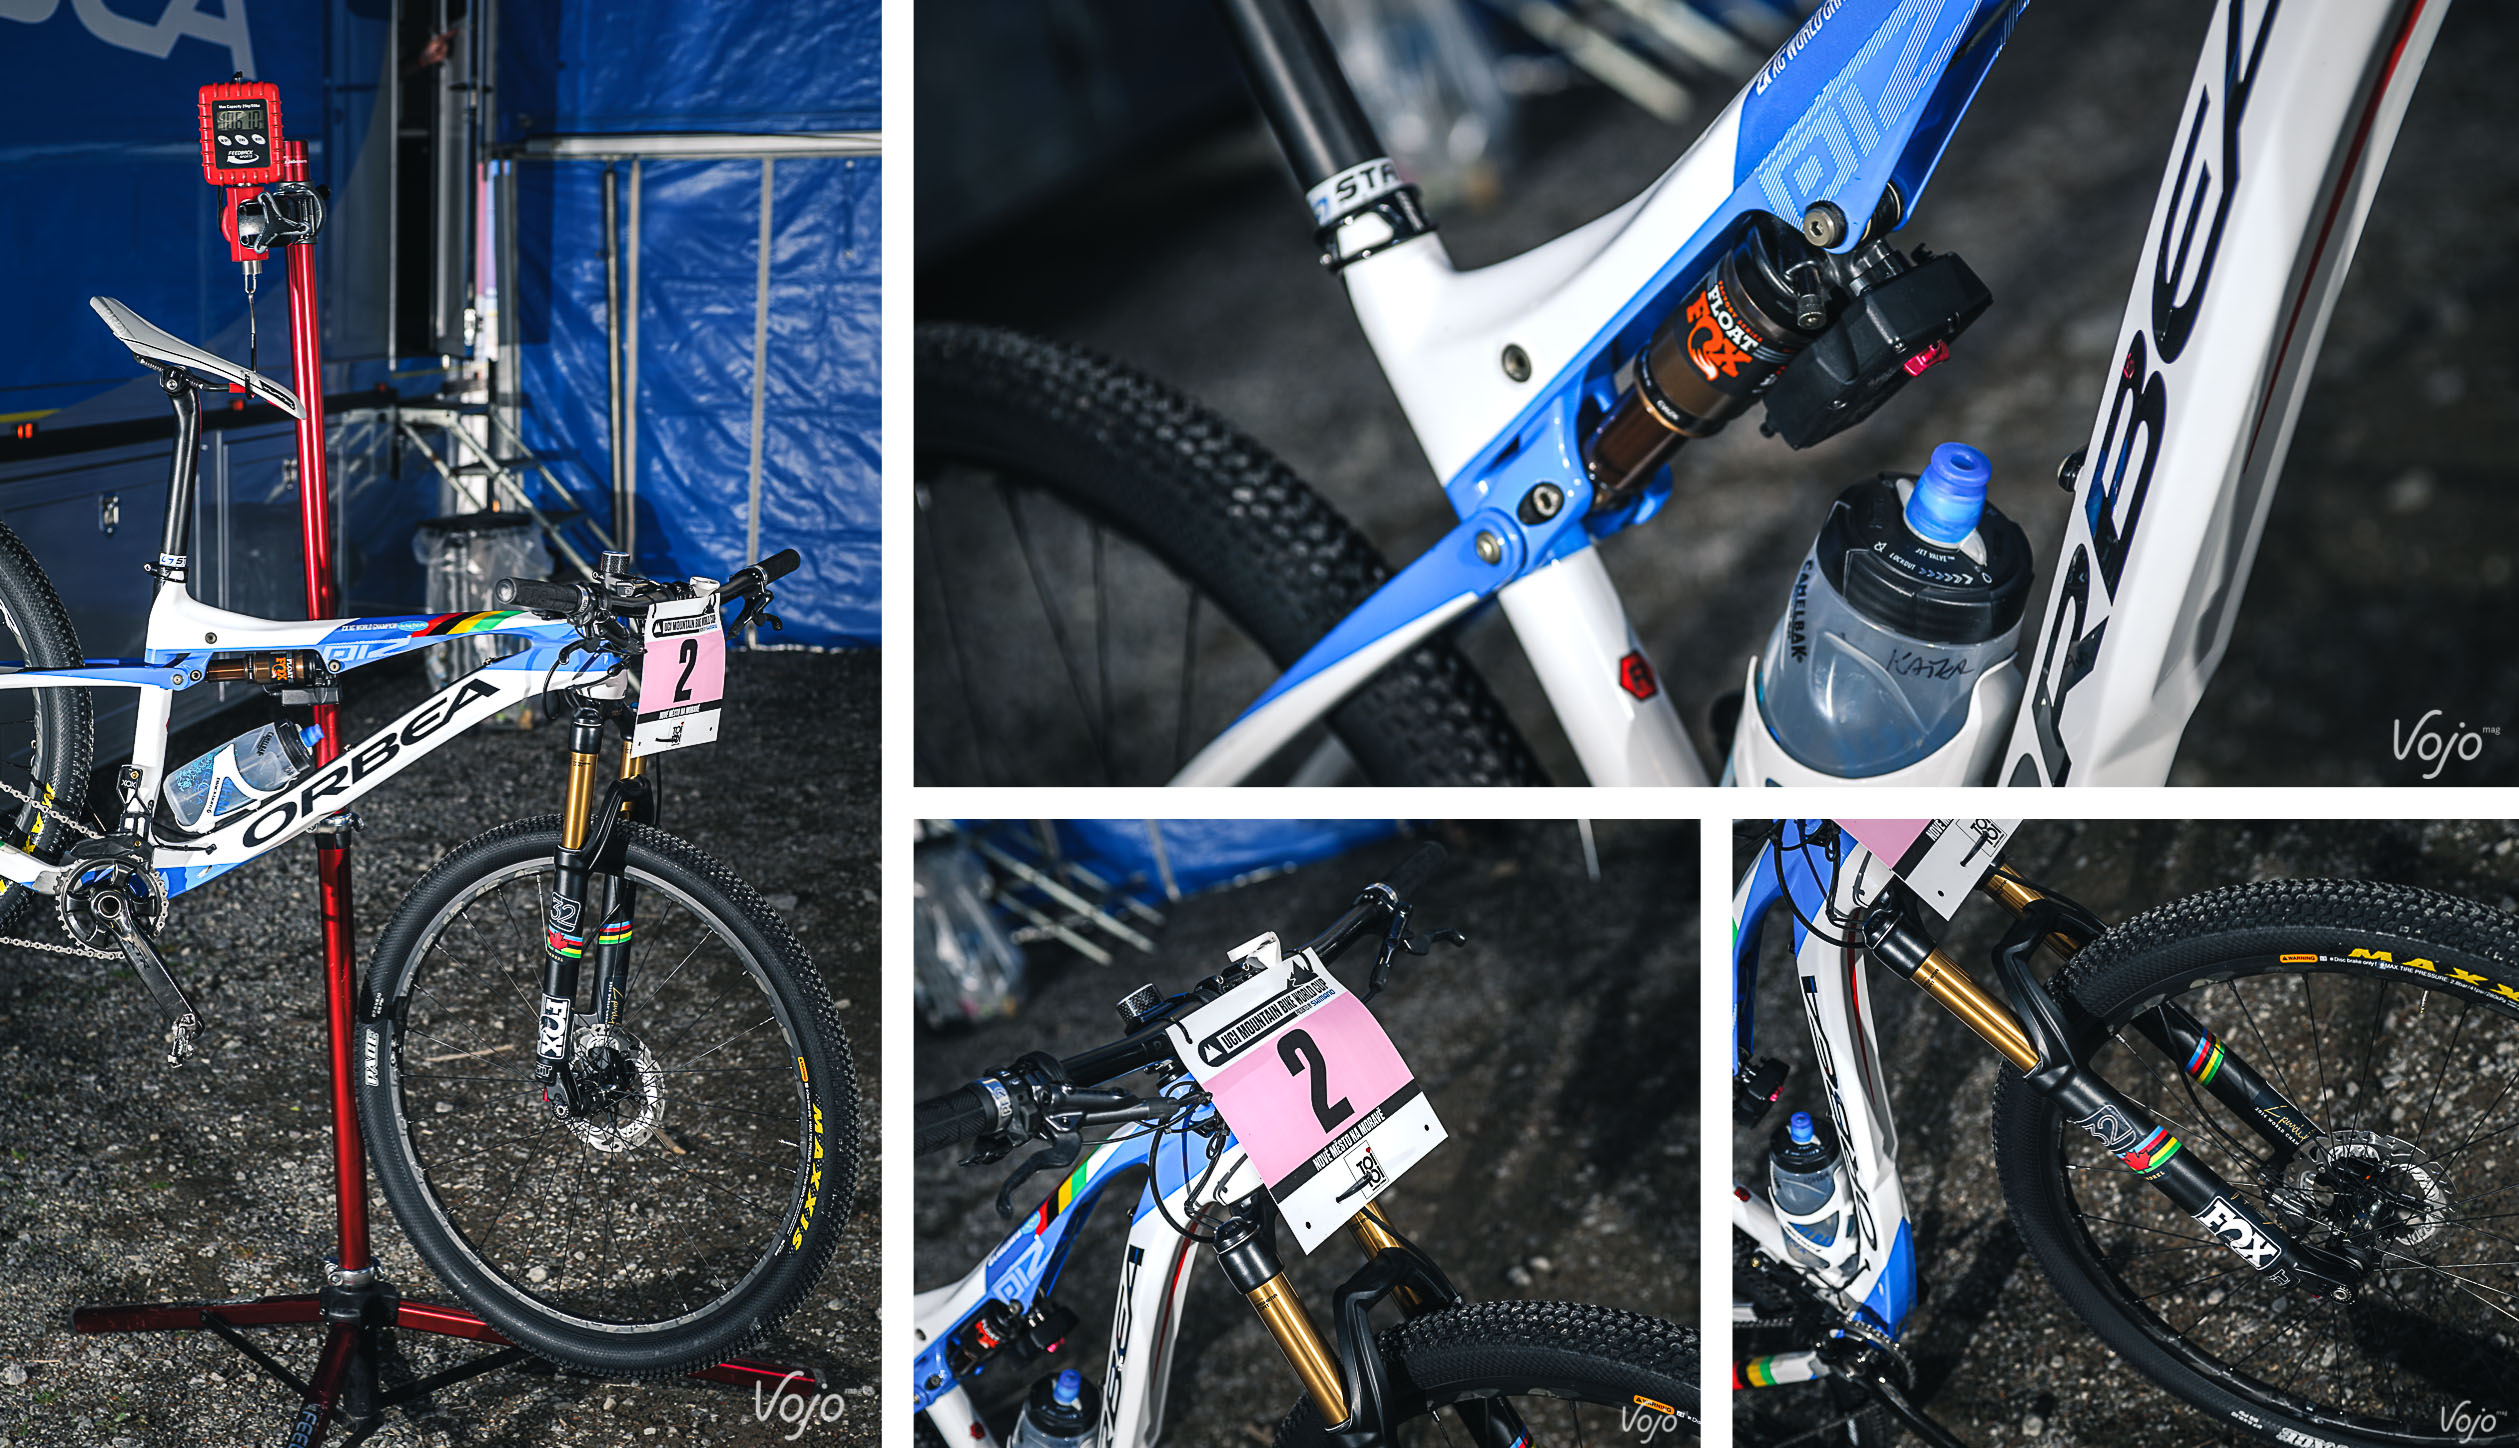 1-World_Cup_MTB_Pro_Bike_Check_Cannondale_Scalpel_Manuel_Fumic_Copyright_OBeart_VojoMag-1-2